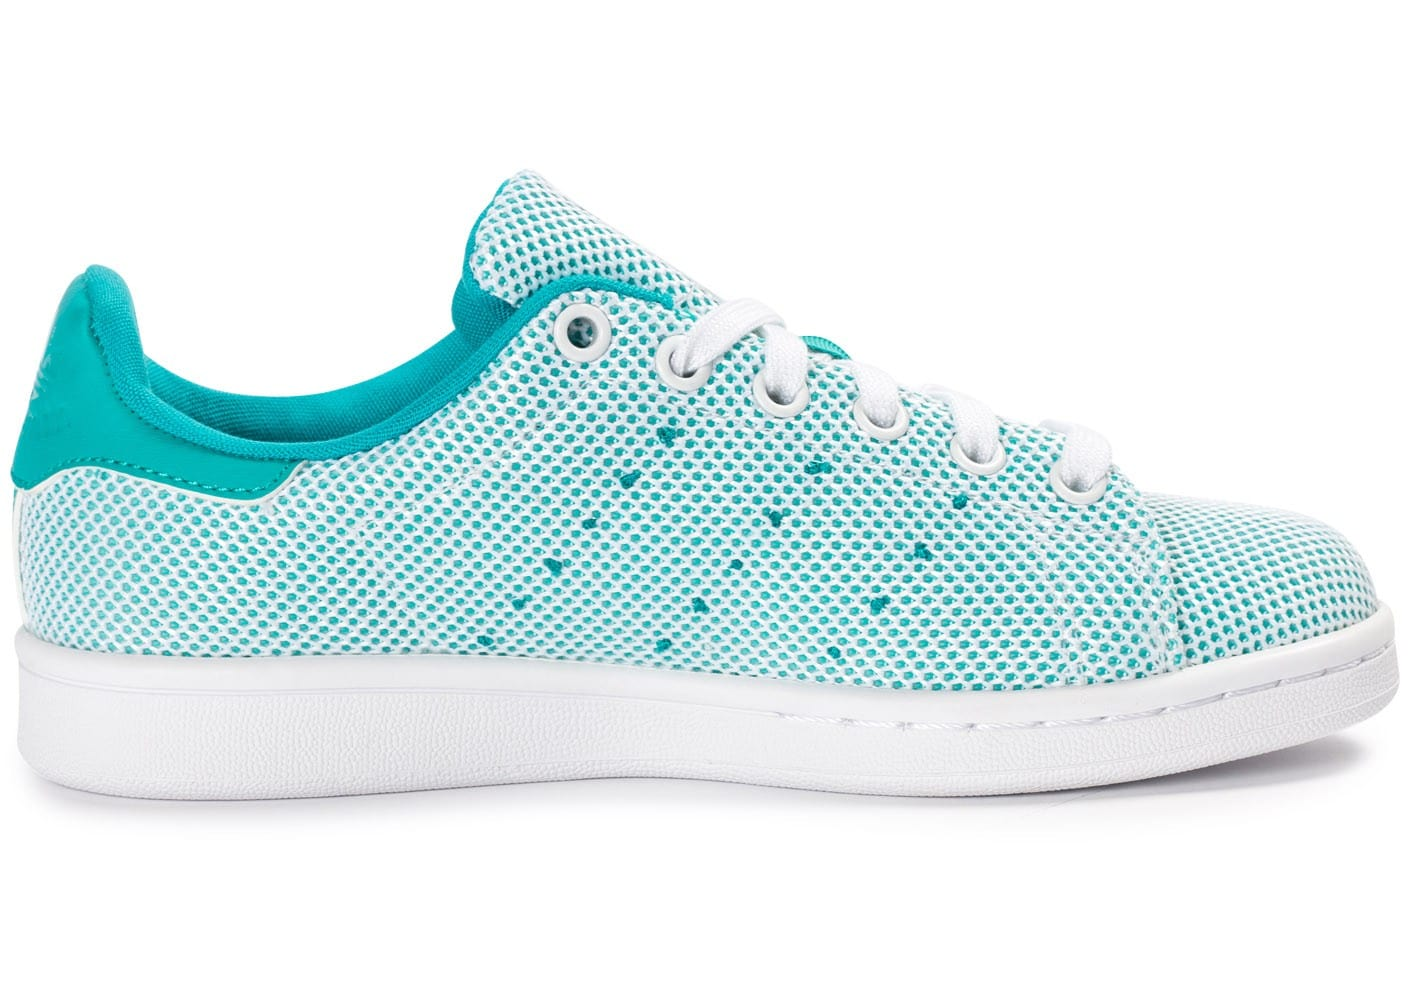 Adidas Stan Smith Turquoise